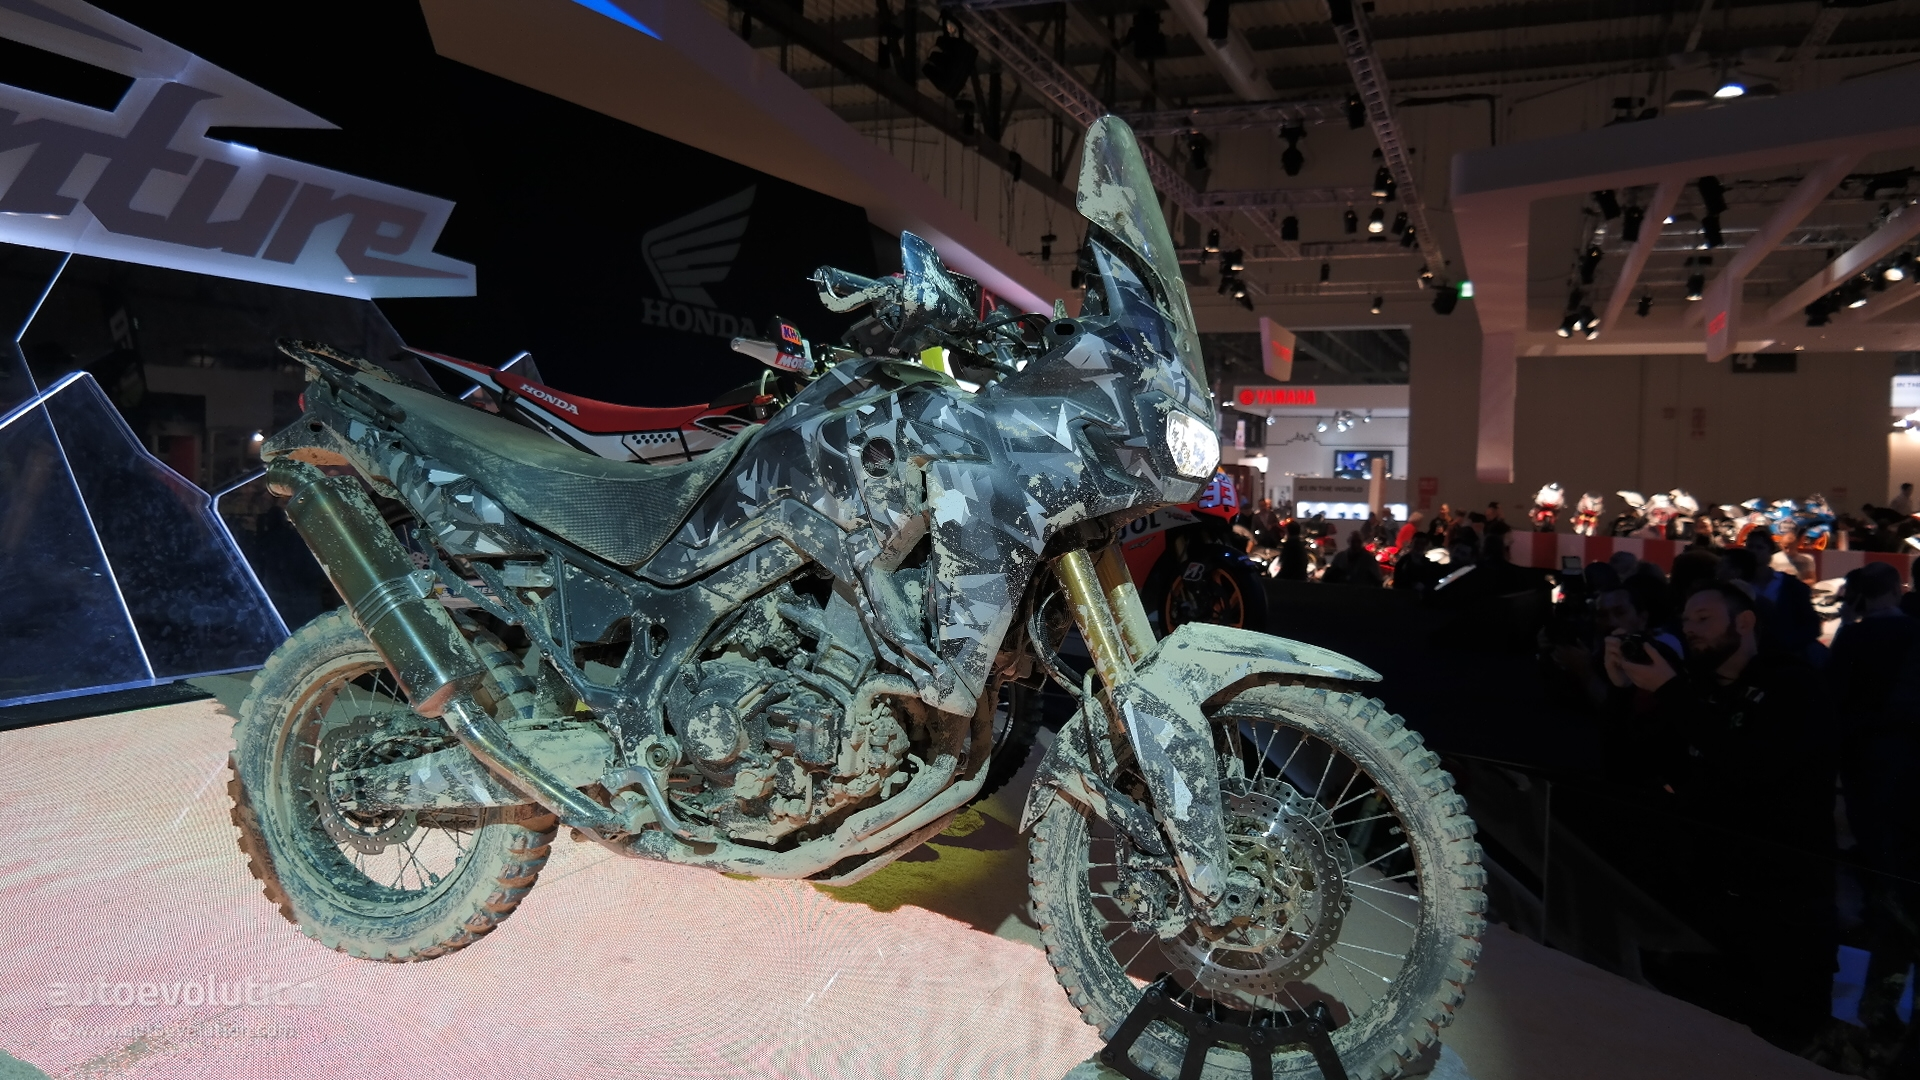 Honda Africa Twin Final Concept Revealed at EICMA 2014 [Live Photos] - autoevolution